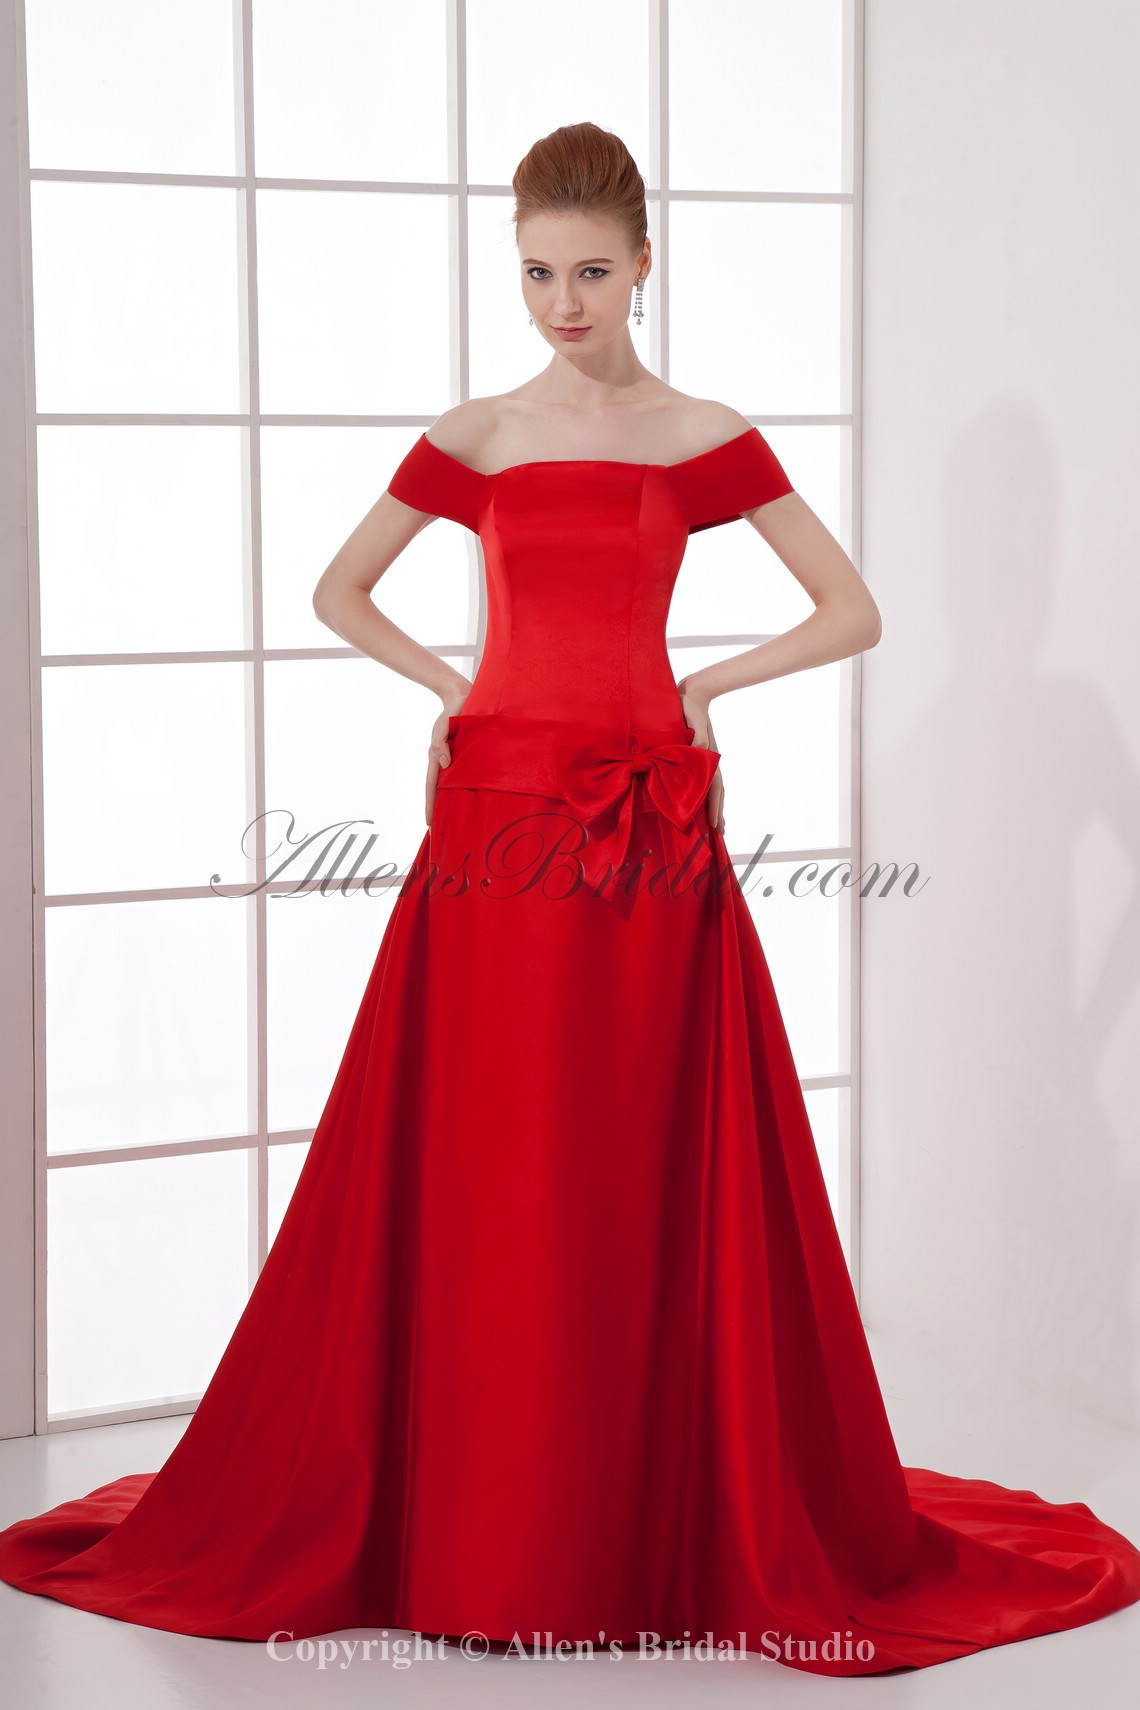 /107-849/satin-off-the-shoulder-neckline-a-line-chapel-train-bow-prom-dress.jpg